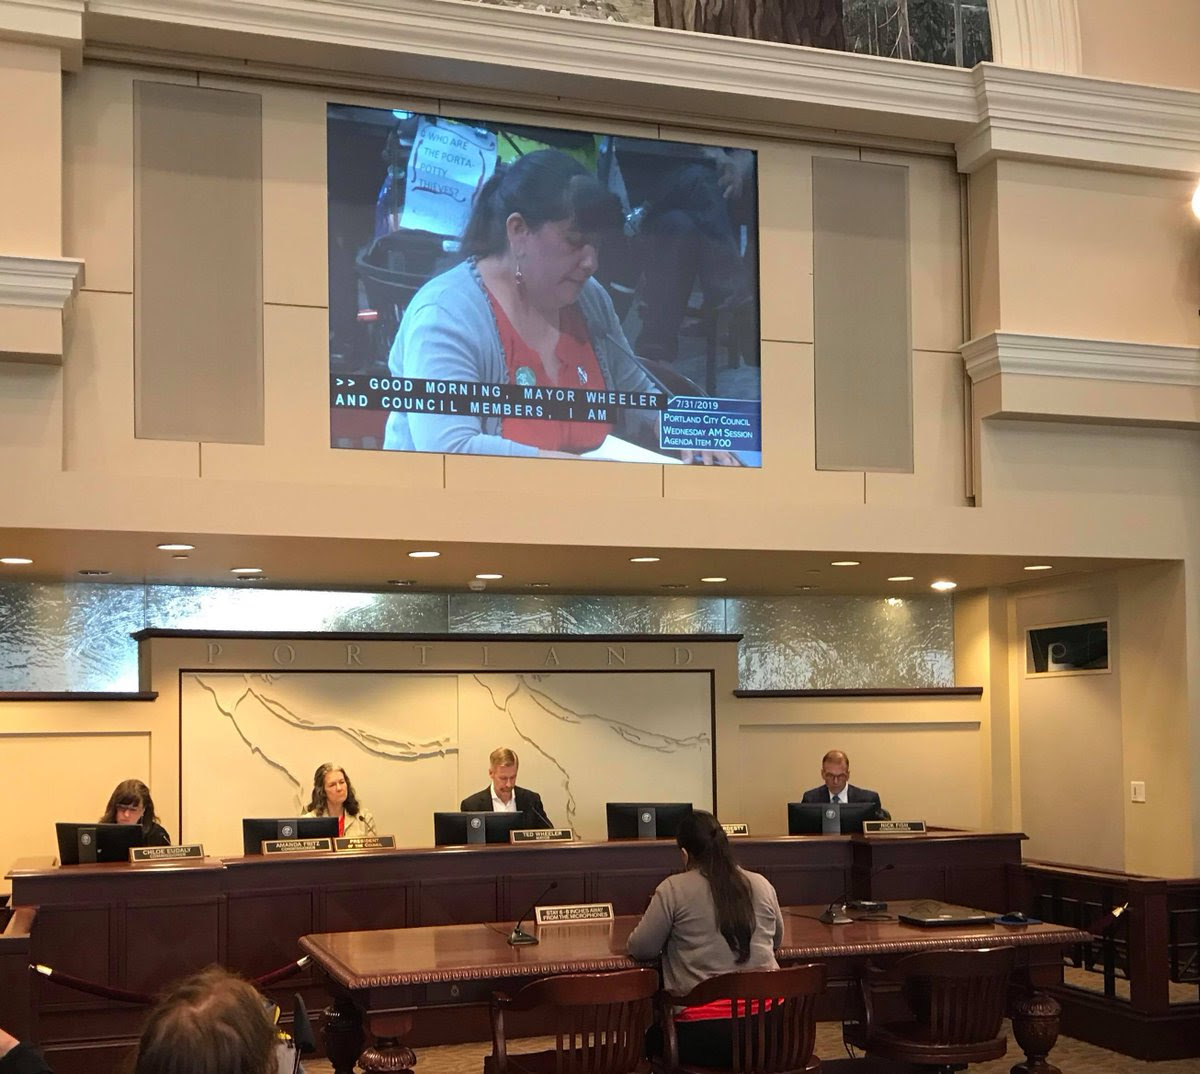 Lluvia_Merello_testimony_on_Zenith_at_Portland_City_Hall.jpg